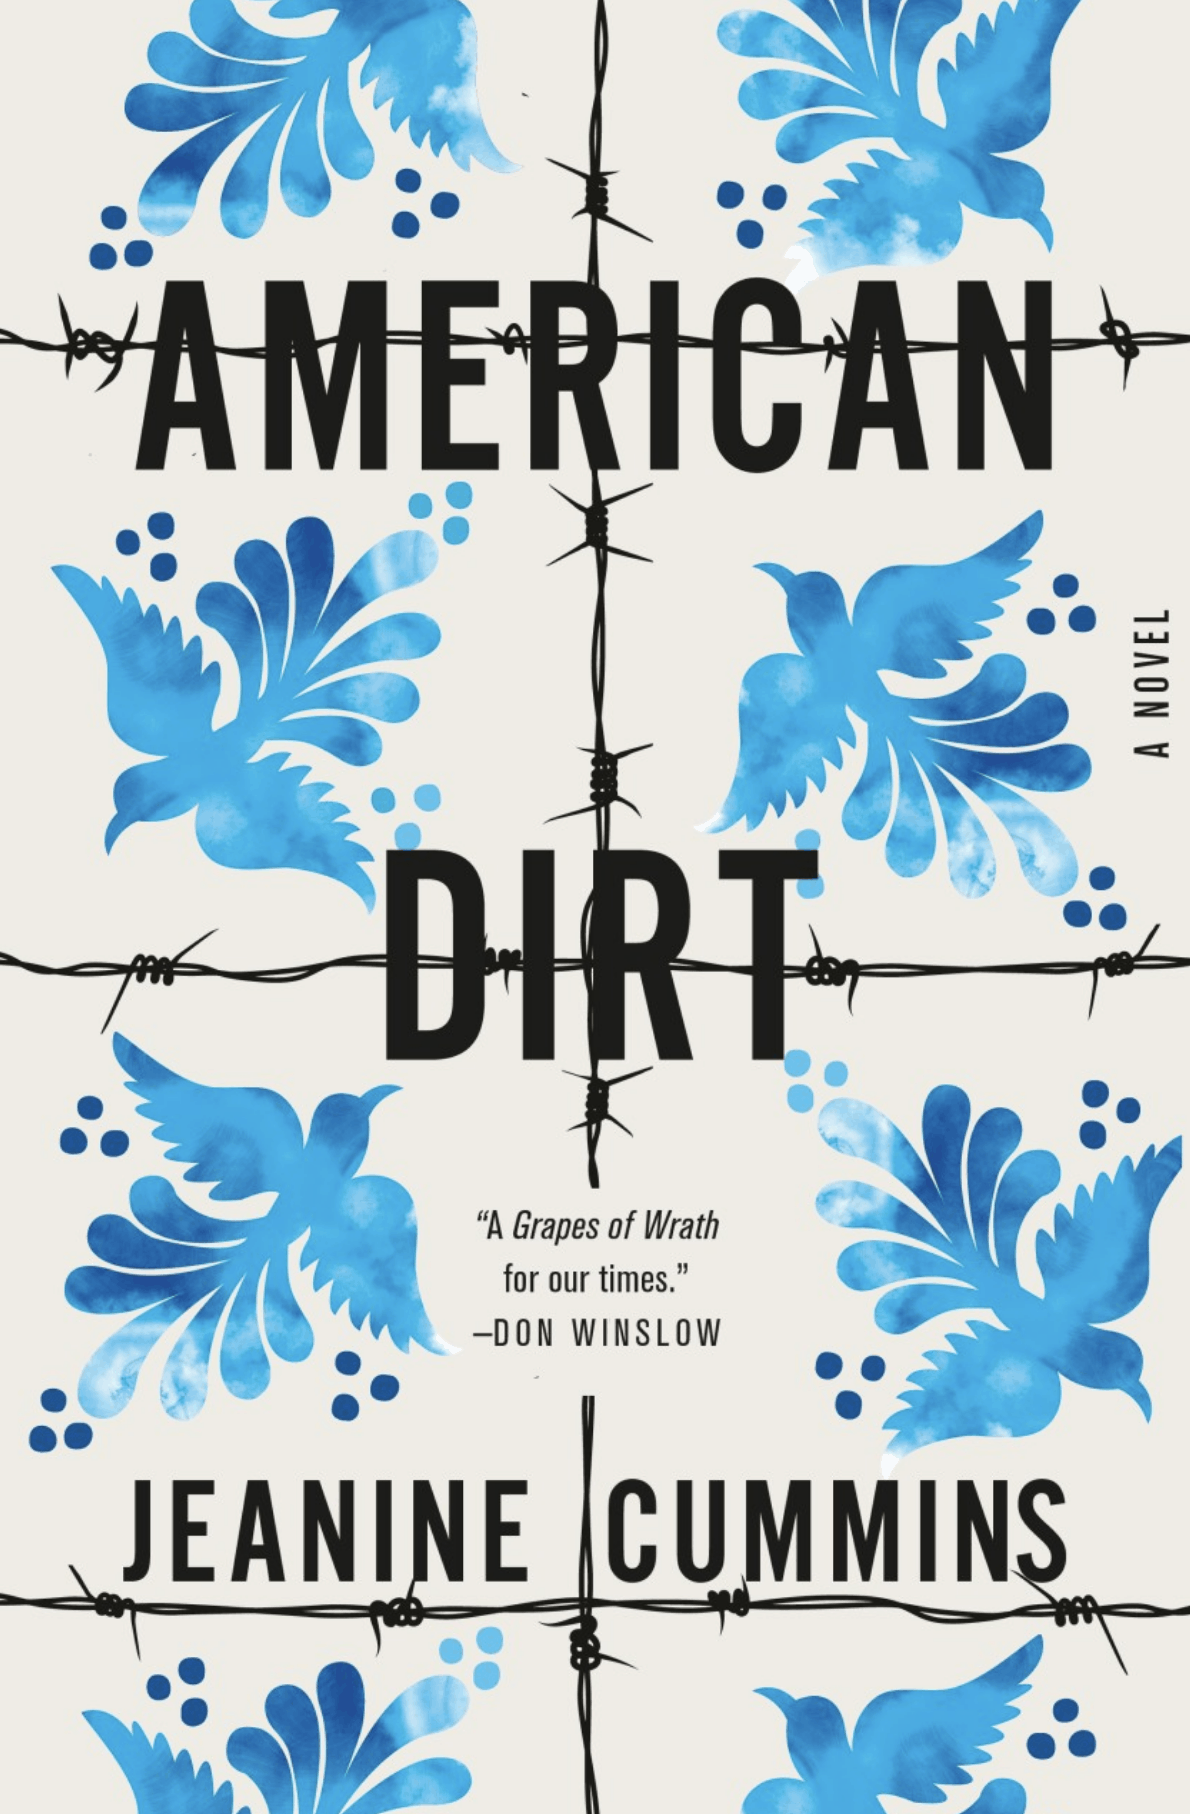 PEN America Responds to 'American Dirt' Controversy